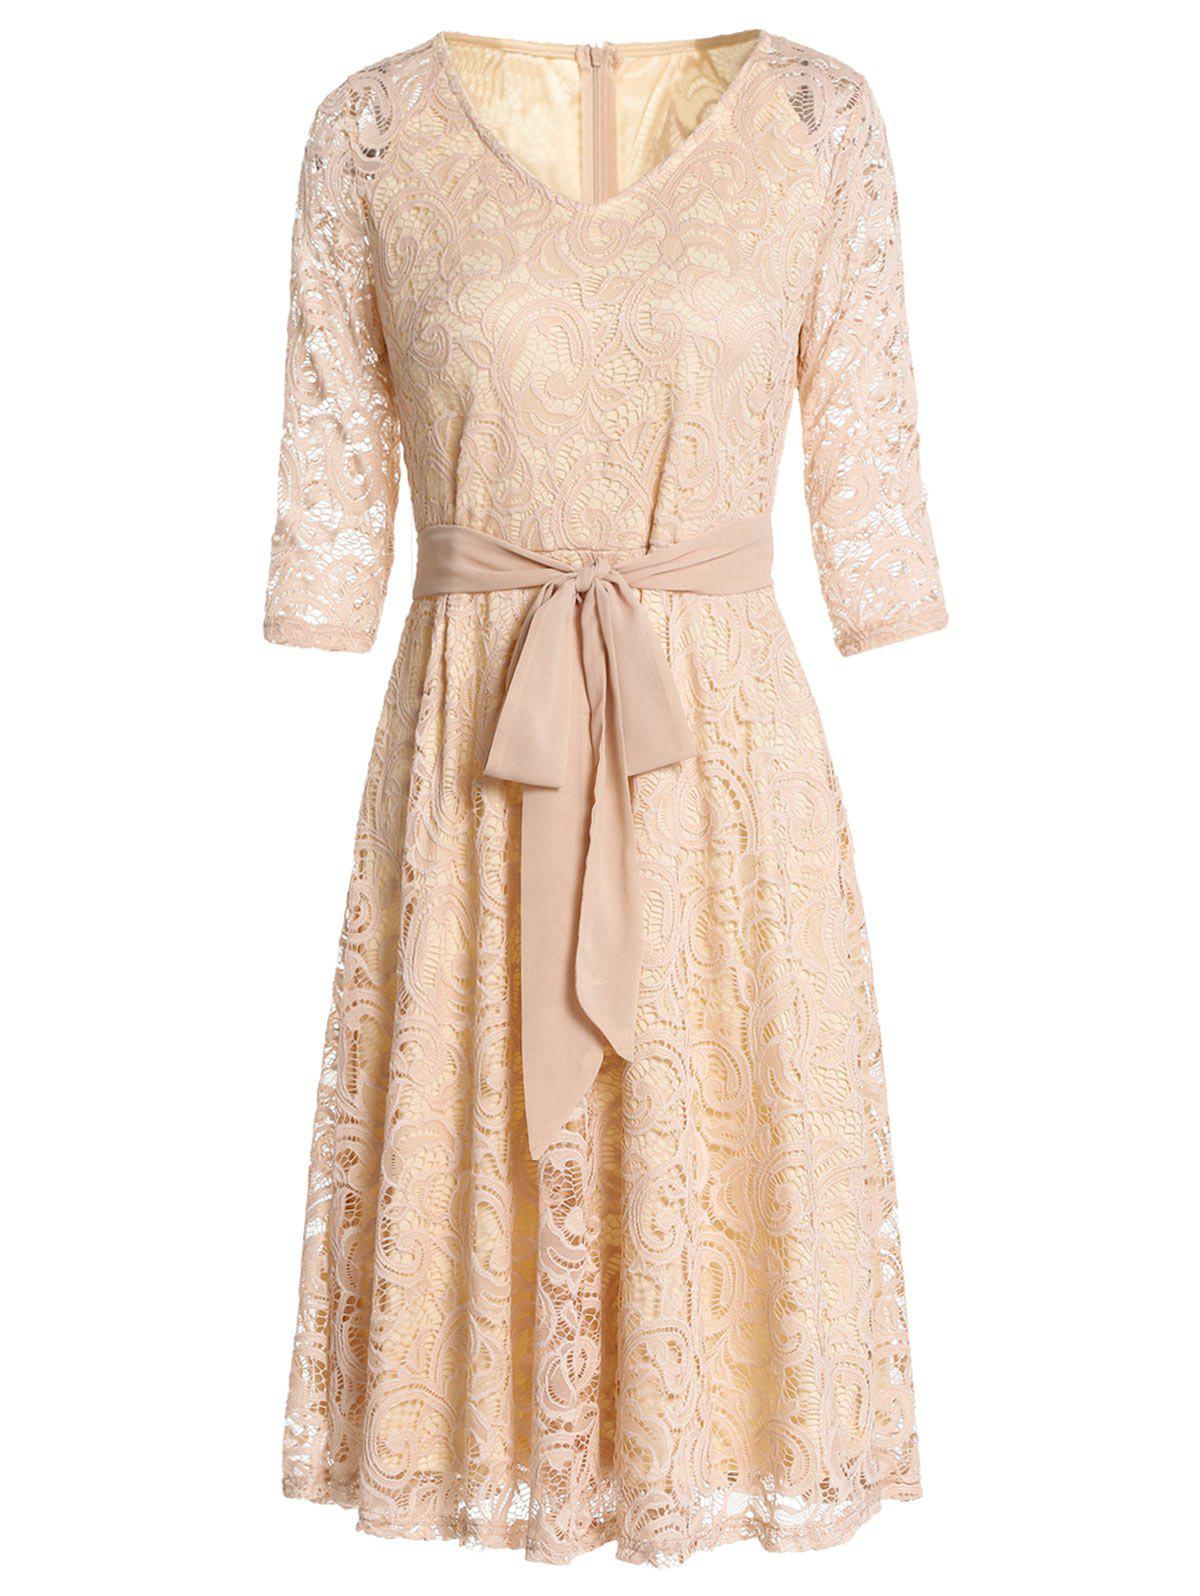 Retro Lace Belted Pin Up Dress - BLANCHED ALMOND S